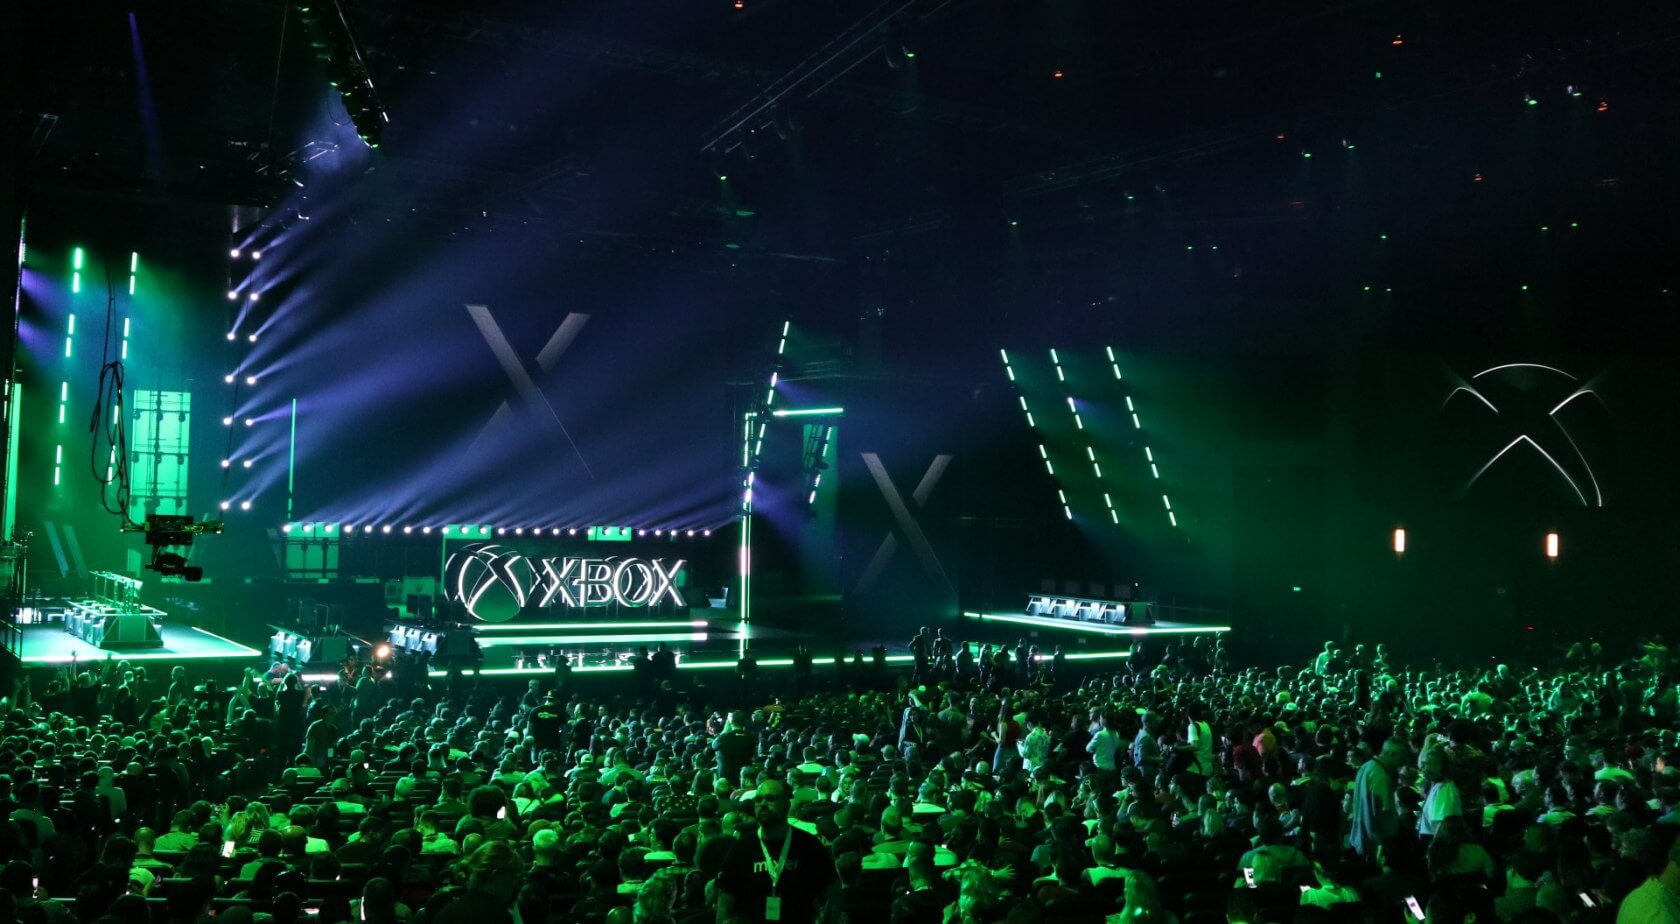 Microsoft and Ubisoft will hold digital events following E3 2020's cancelation